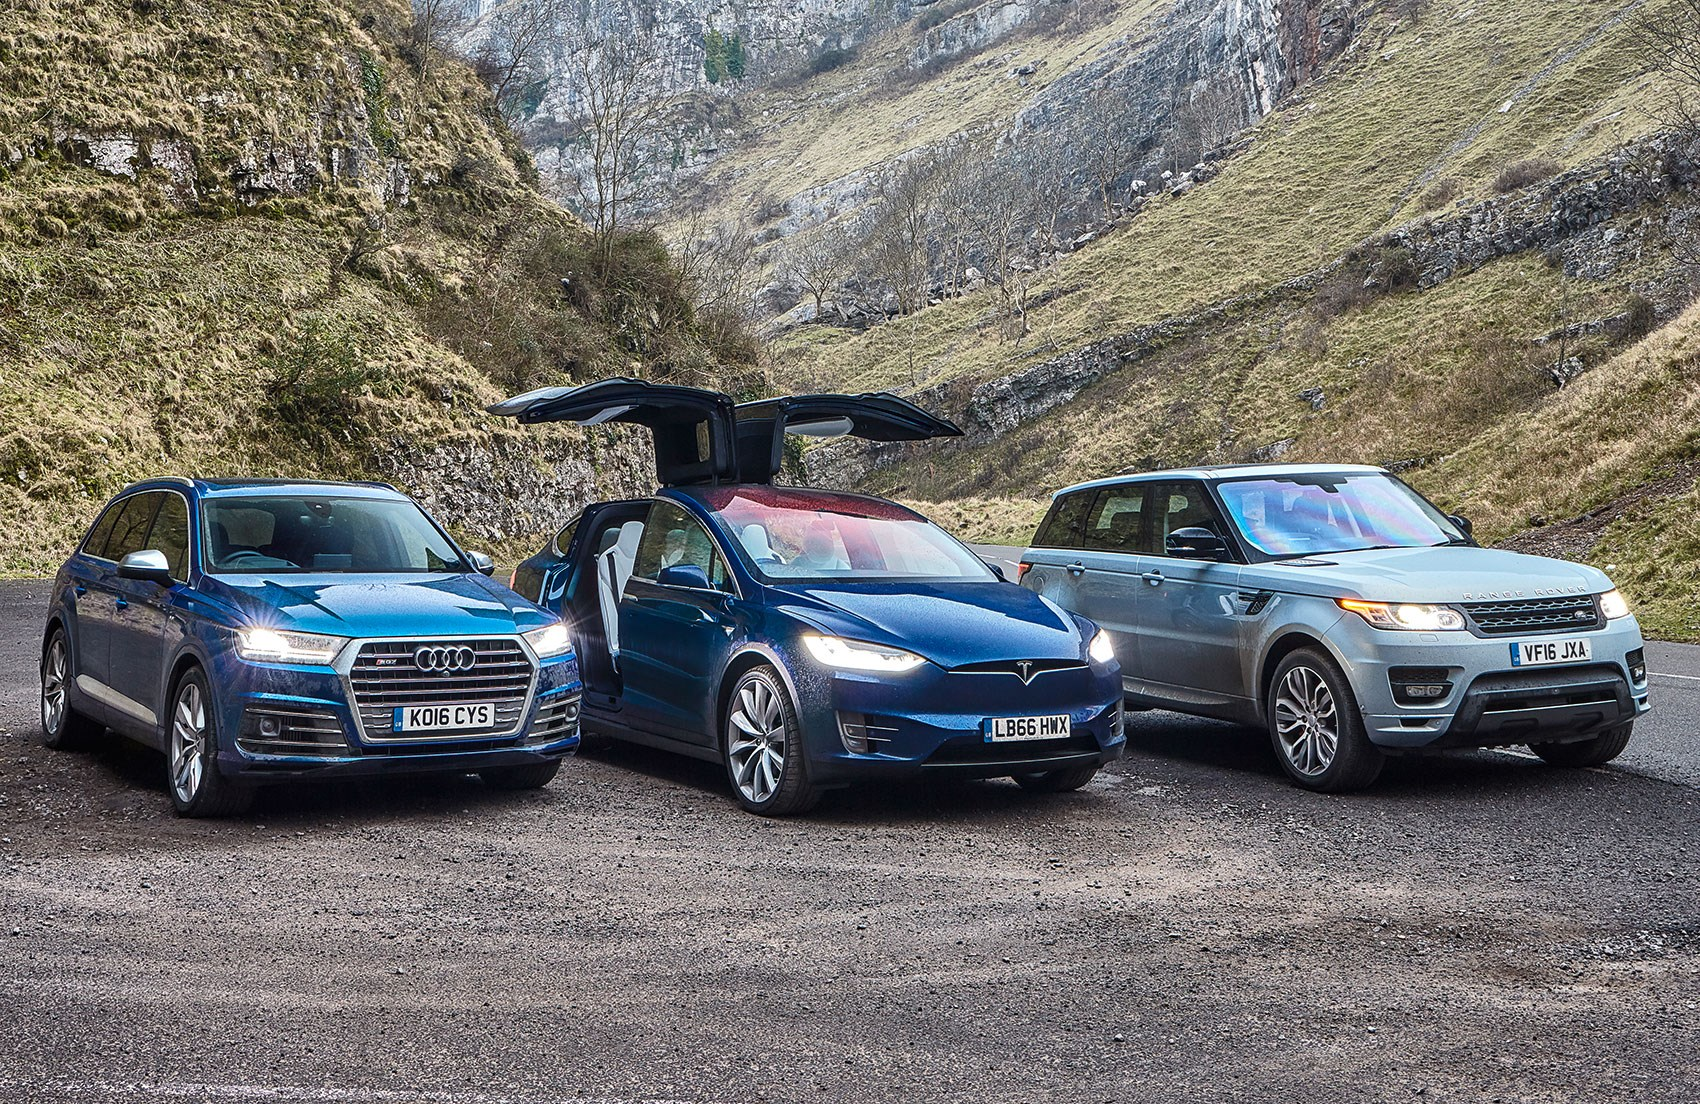 Tesla Model X Outflanked In More Ways Than One